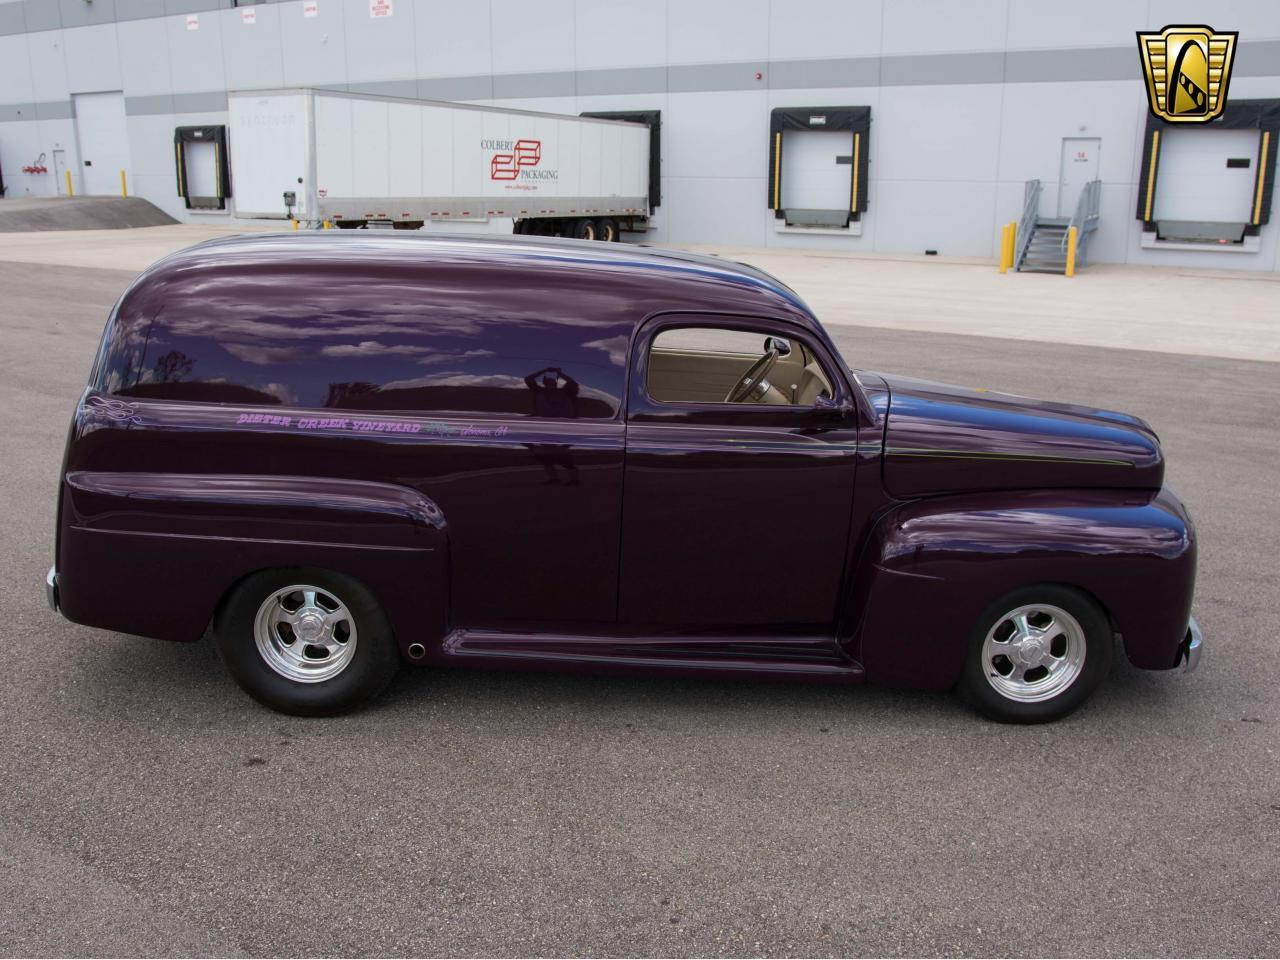 Large Picture of '48 Ford F100 located in Kenosha Wisconsin - $37,995.00 Offered by Gateway Classic Cars - Milwaukee - LHK0